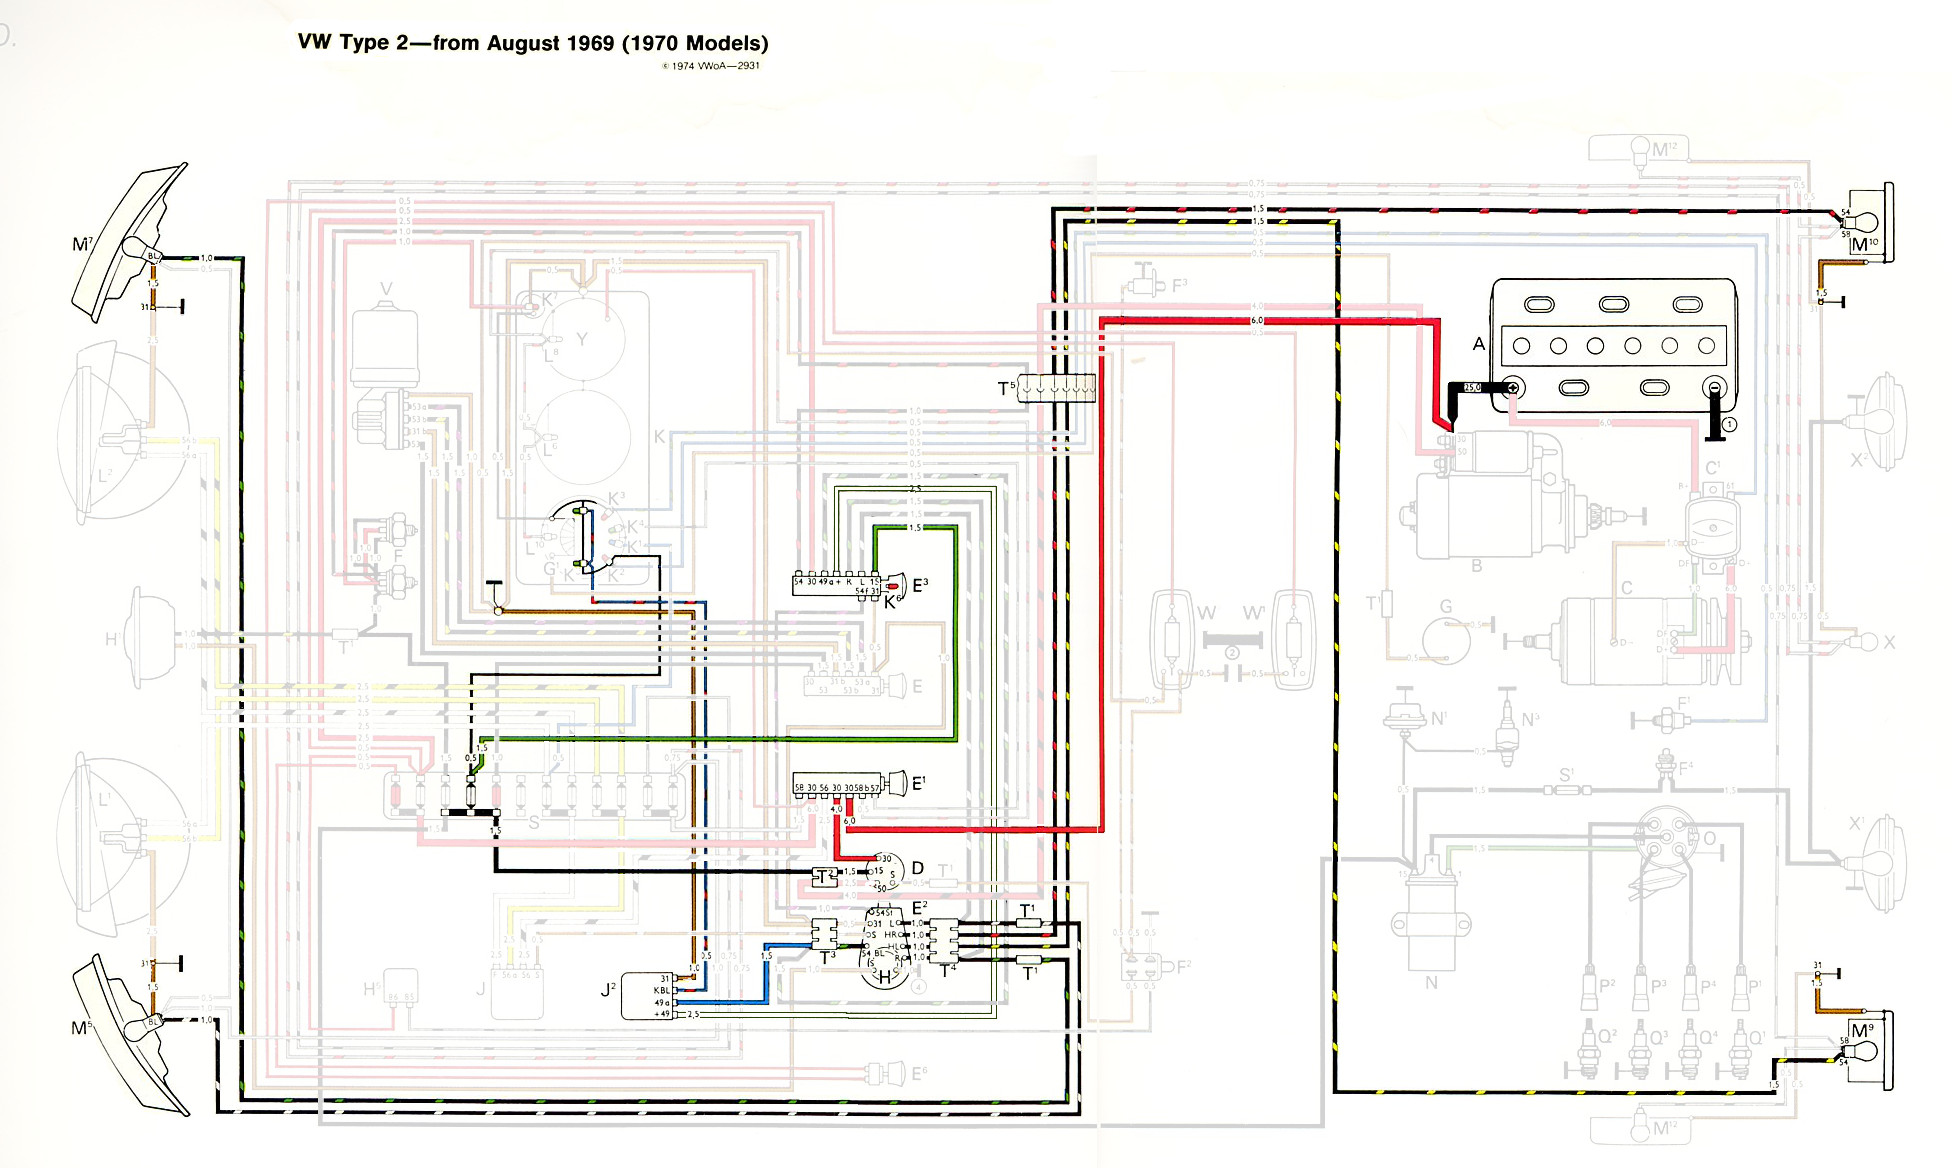 Type 2 Wiring Diagrams 1978 Chevrolet Alternator Diagram Free Download